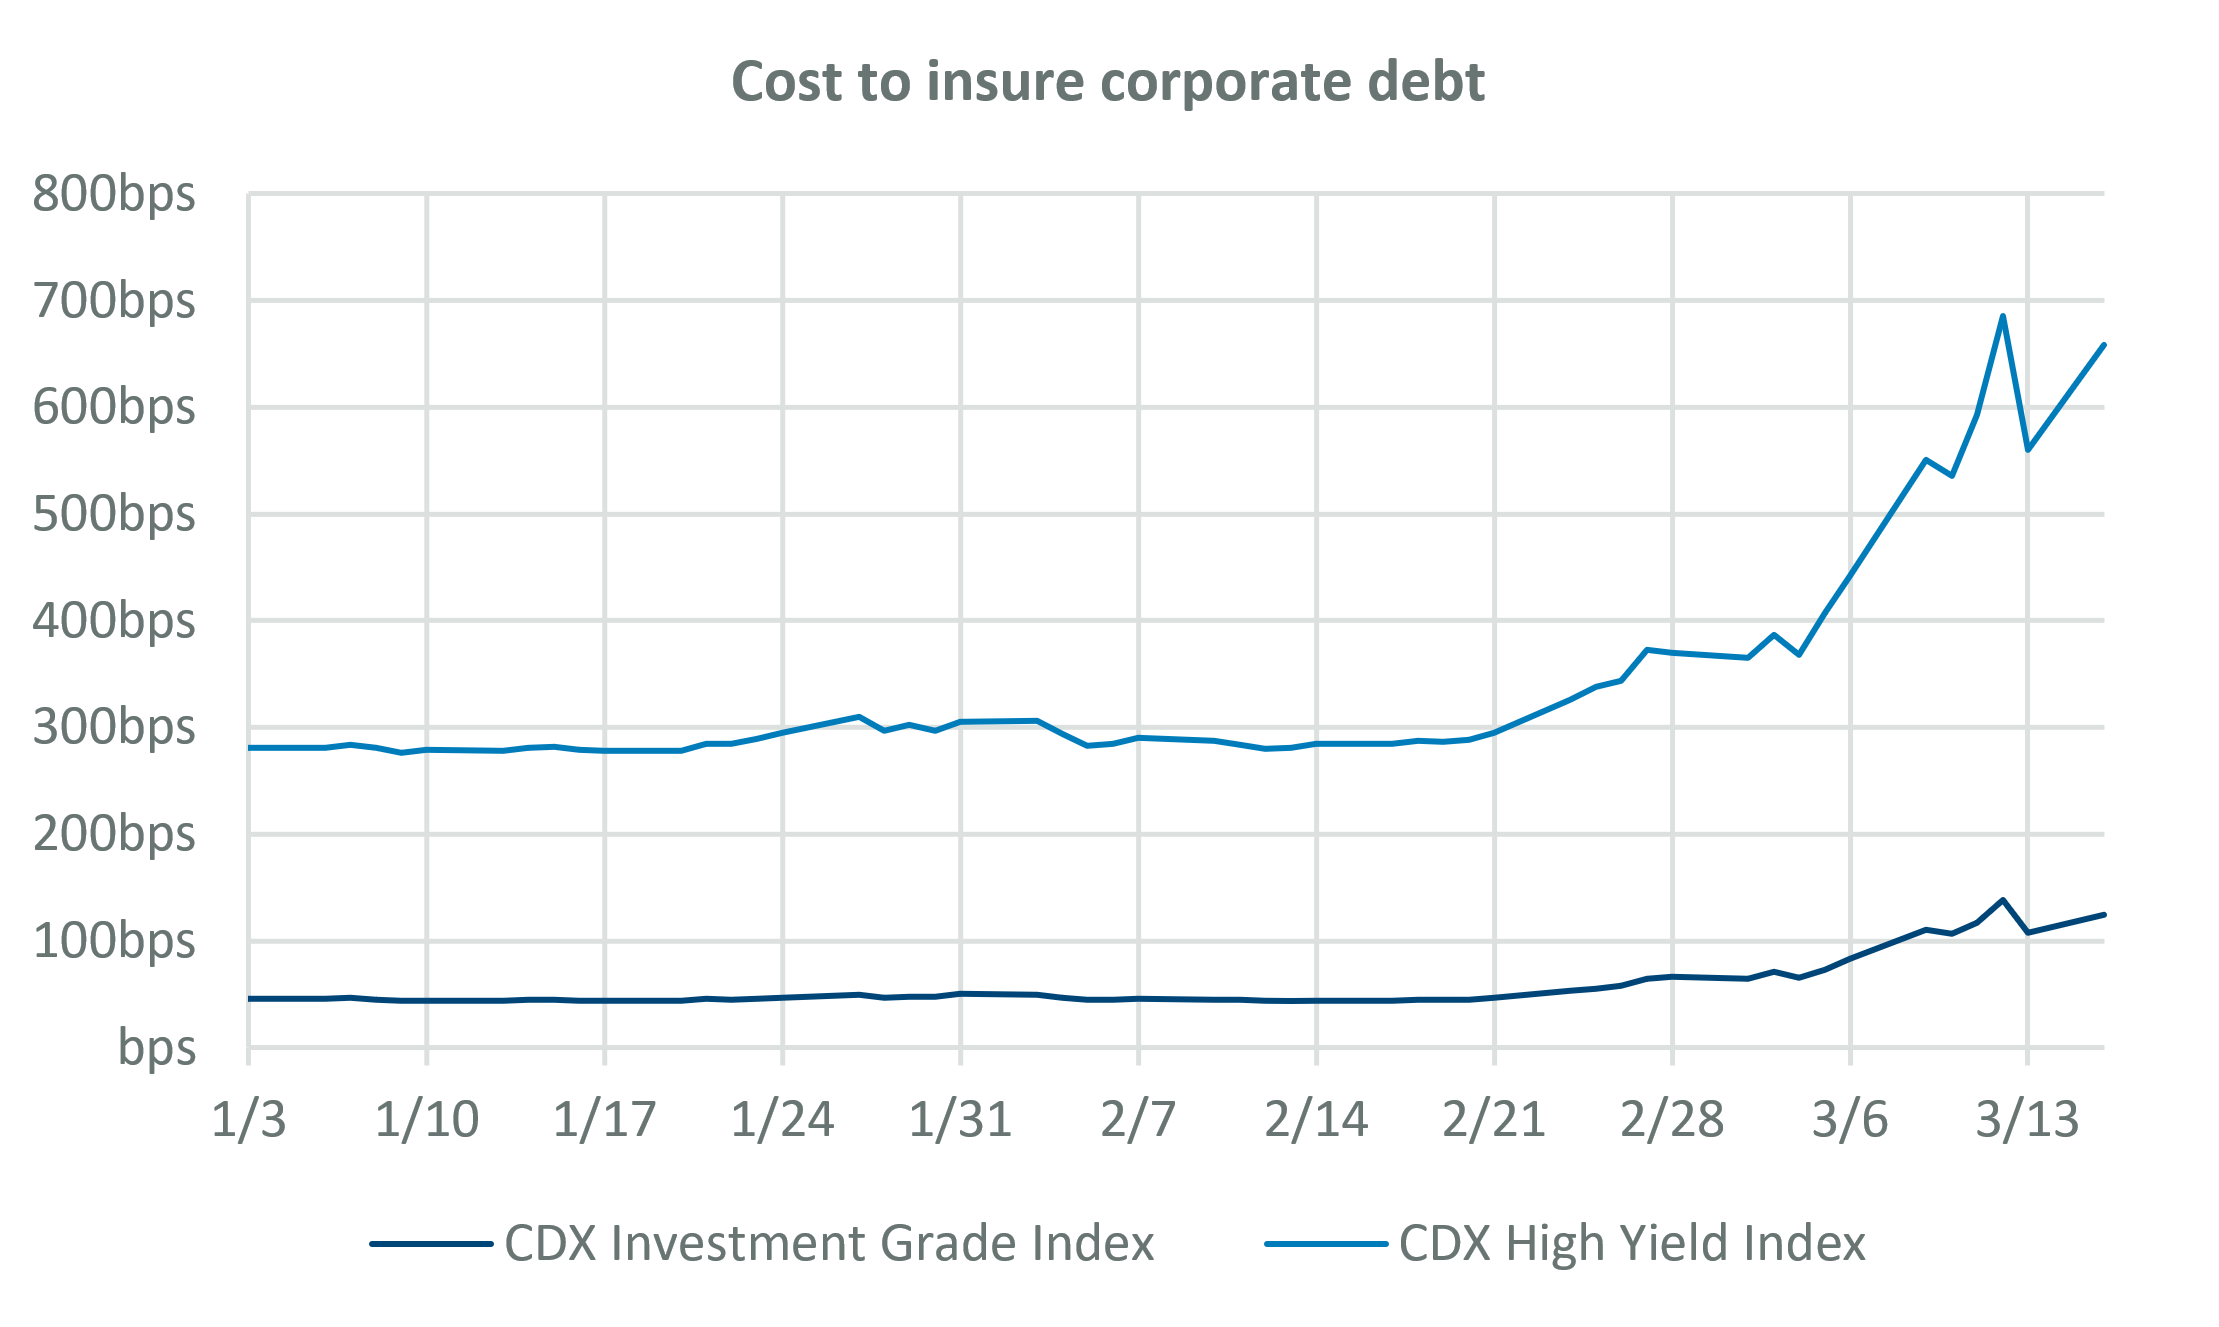 Cost to insure corporate debt